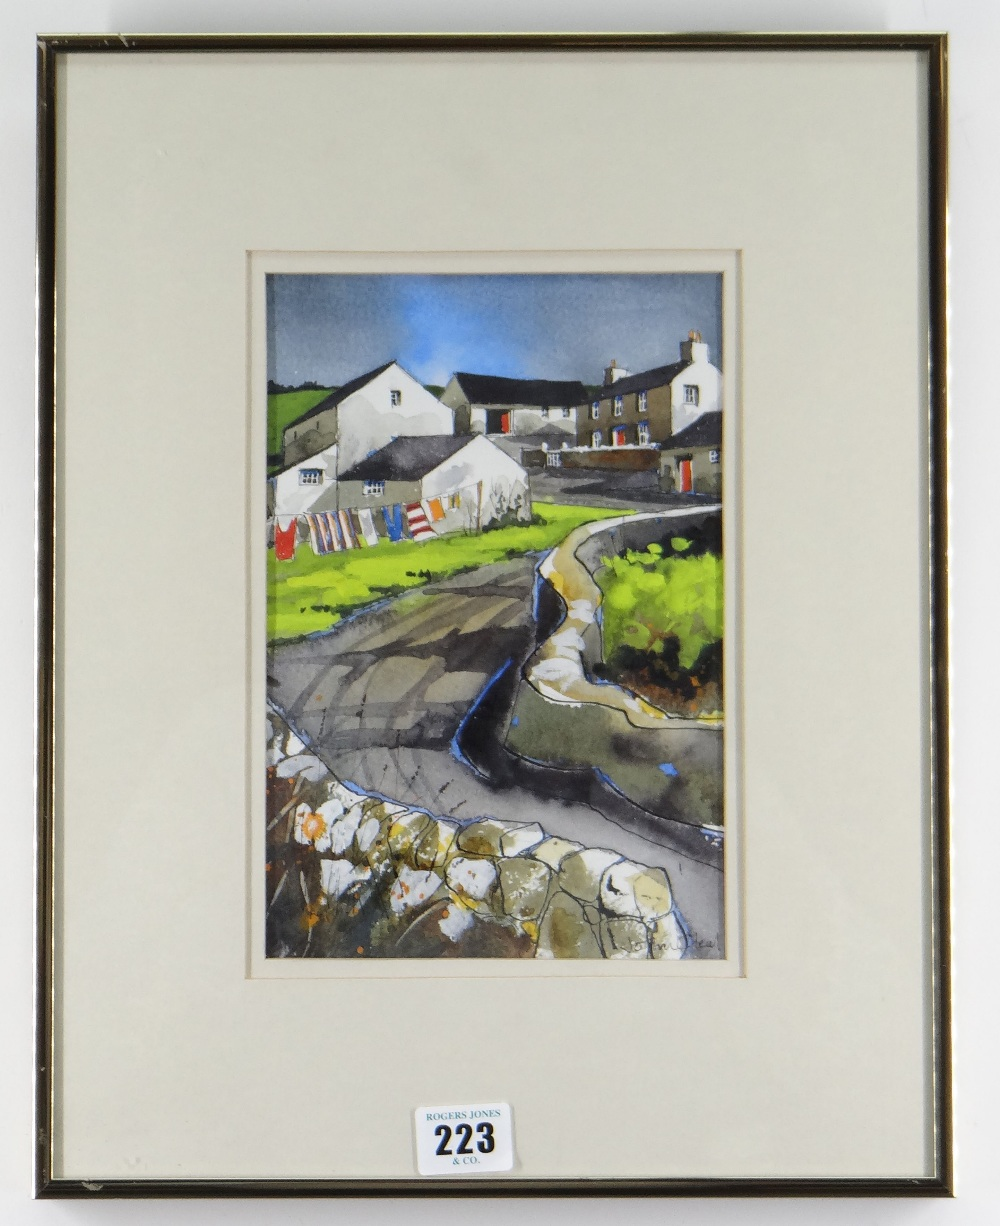 JOHN CLEAL watercolour and ink - West Wales village street with washing line and cottages, - Image 2 of 2